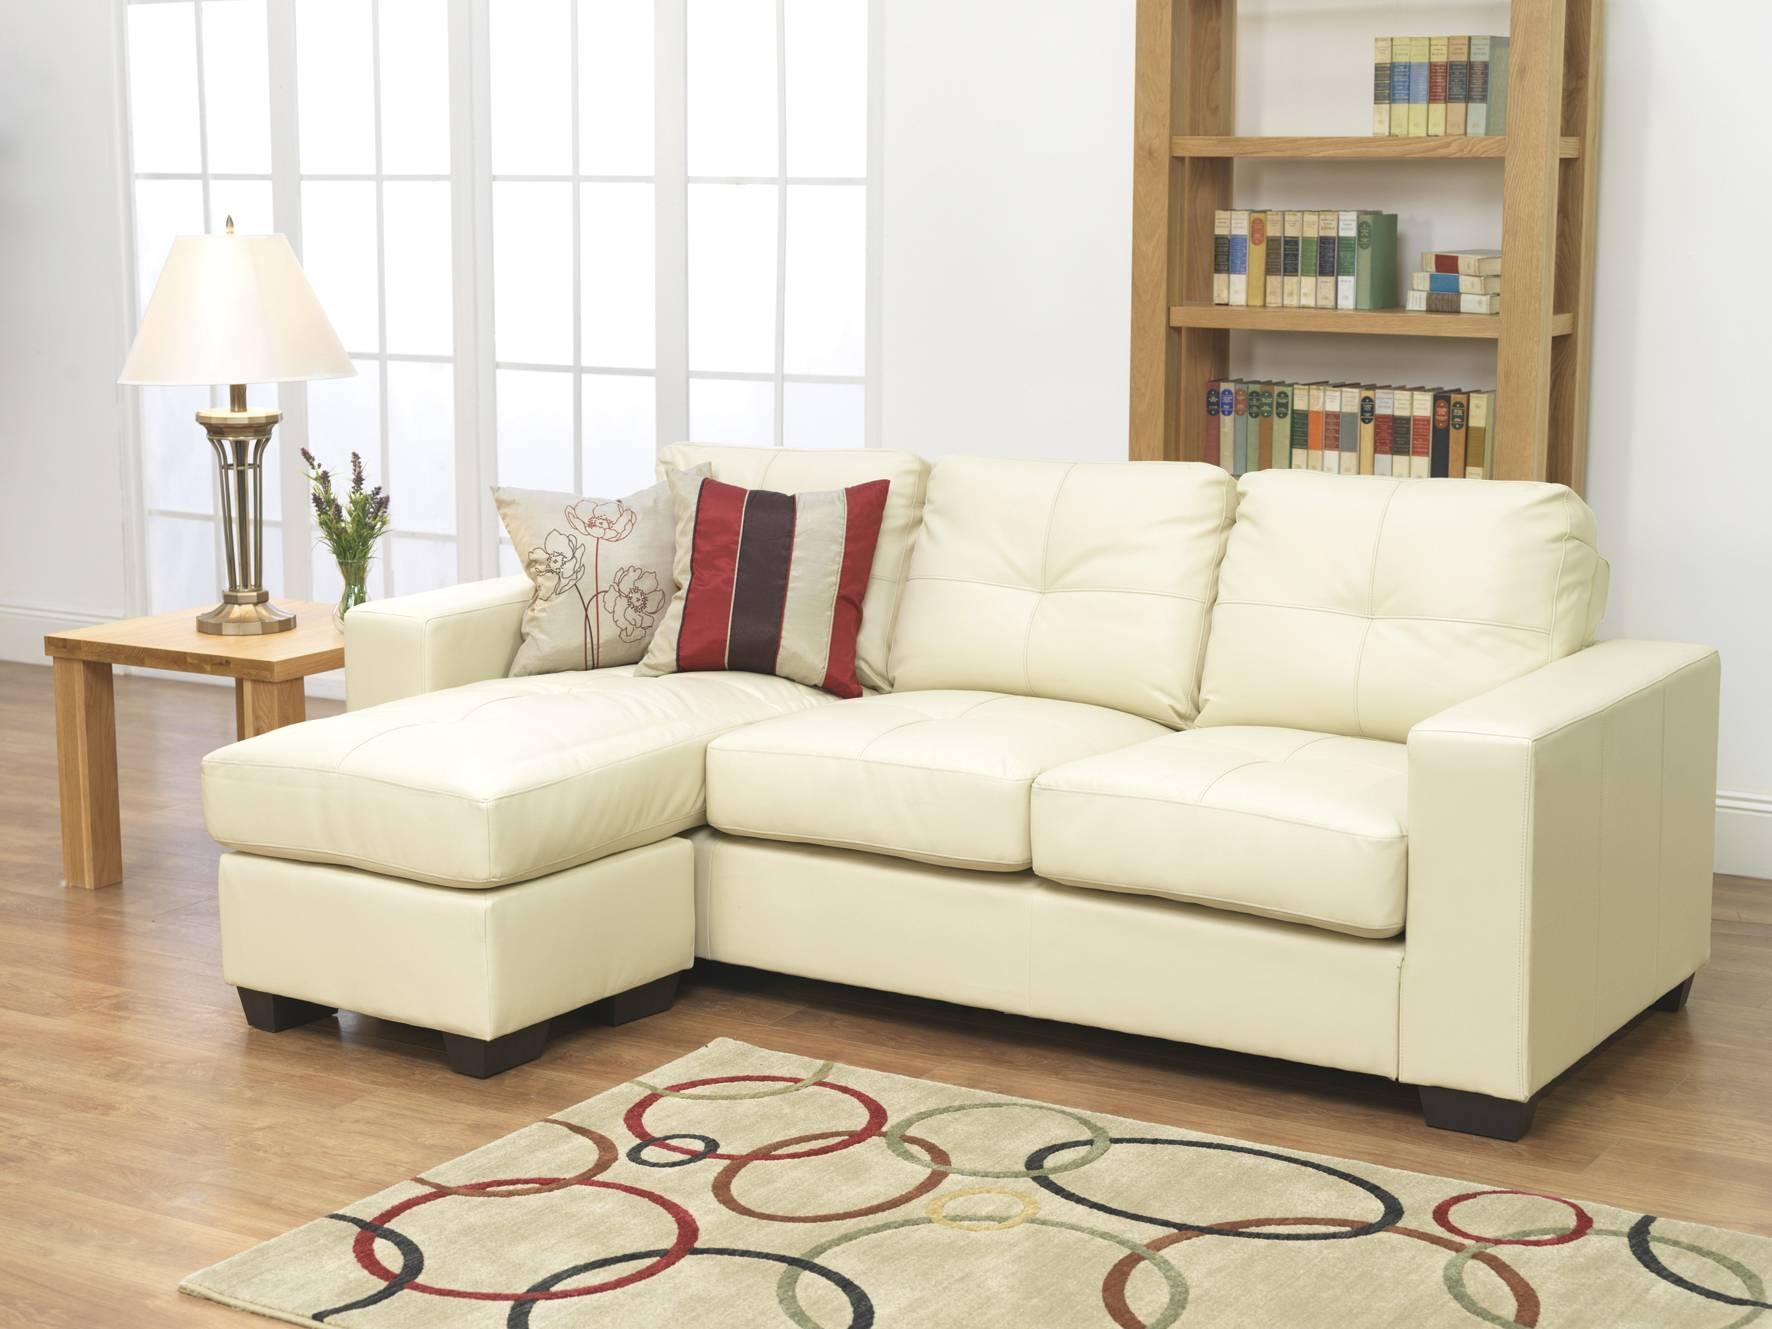 Small L Shaped Ivory Leather Sleeper Sofa With Chaise Lounge Added for Small L-Shaped Sectional Sofas (Image 10 of 15)